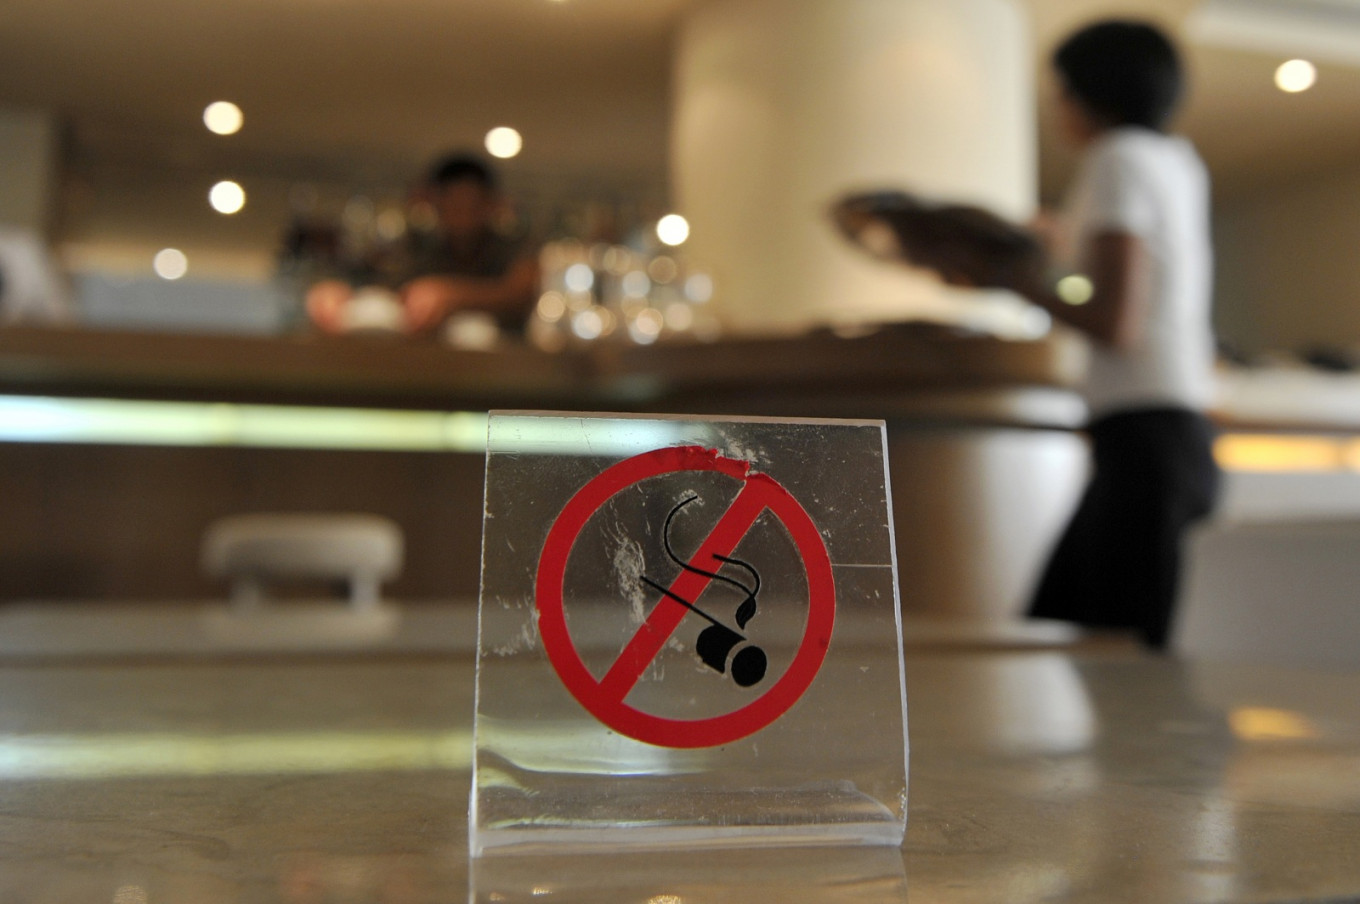 In Greece, smoking is alive and kicking despite bans - Health - The Jakarta  Post